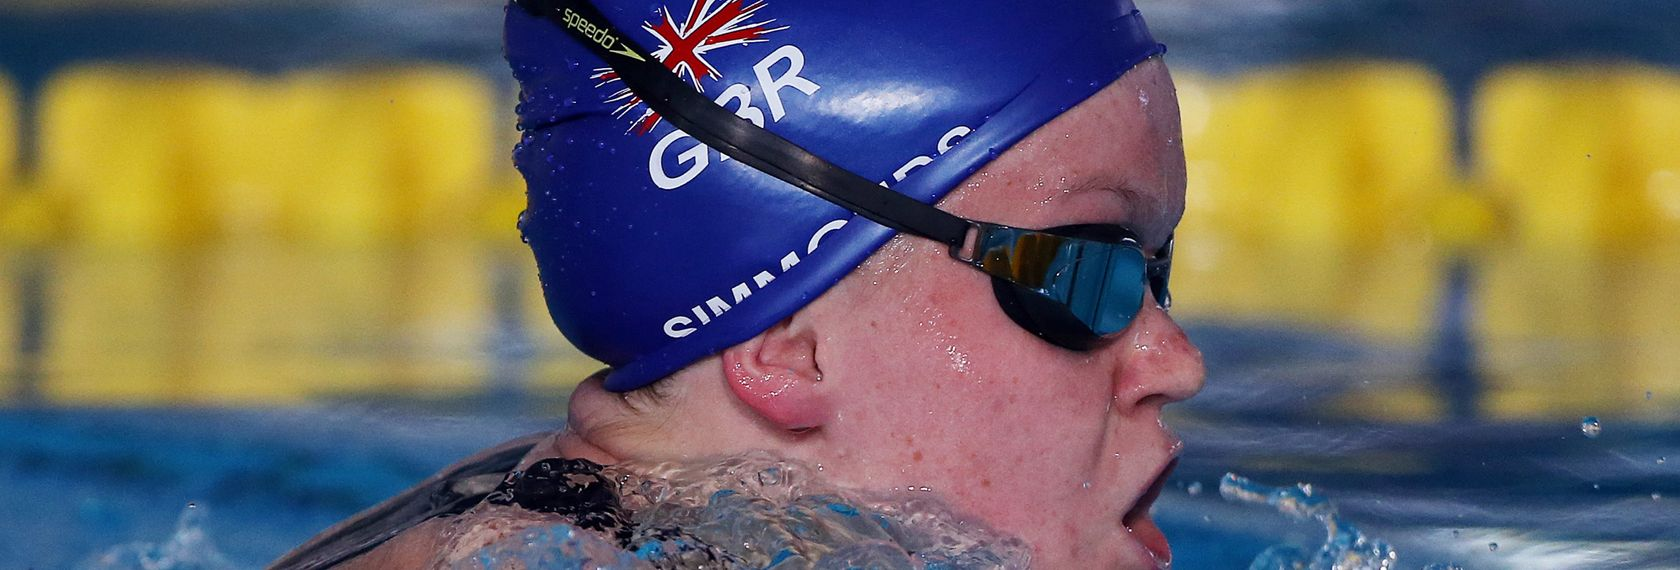 ellie_simmonds_breaststroke_close_up.jpg